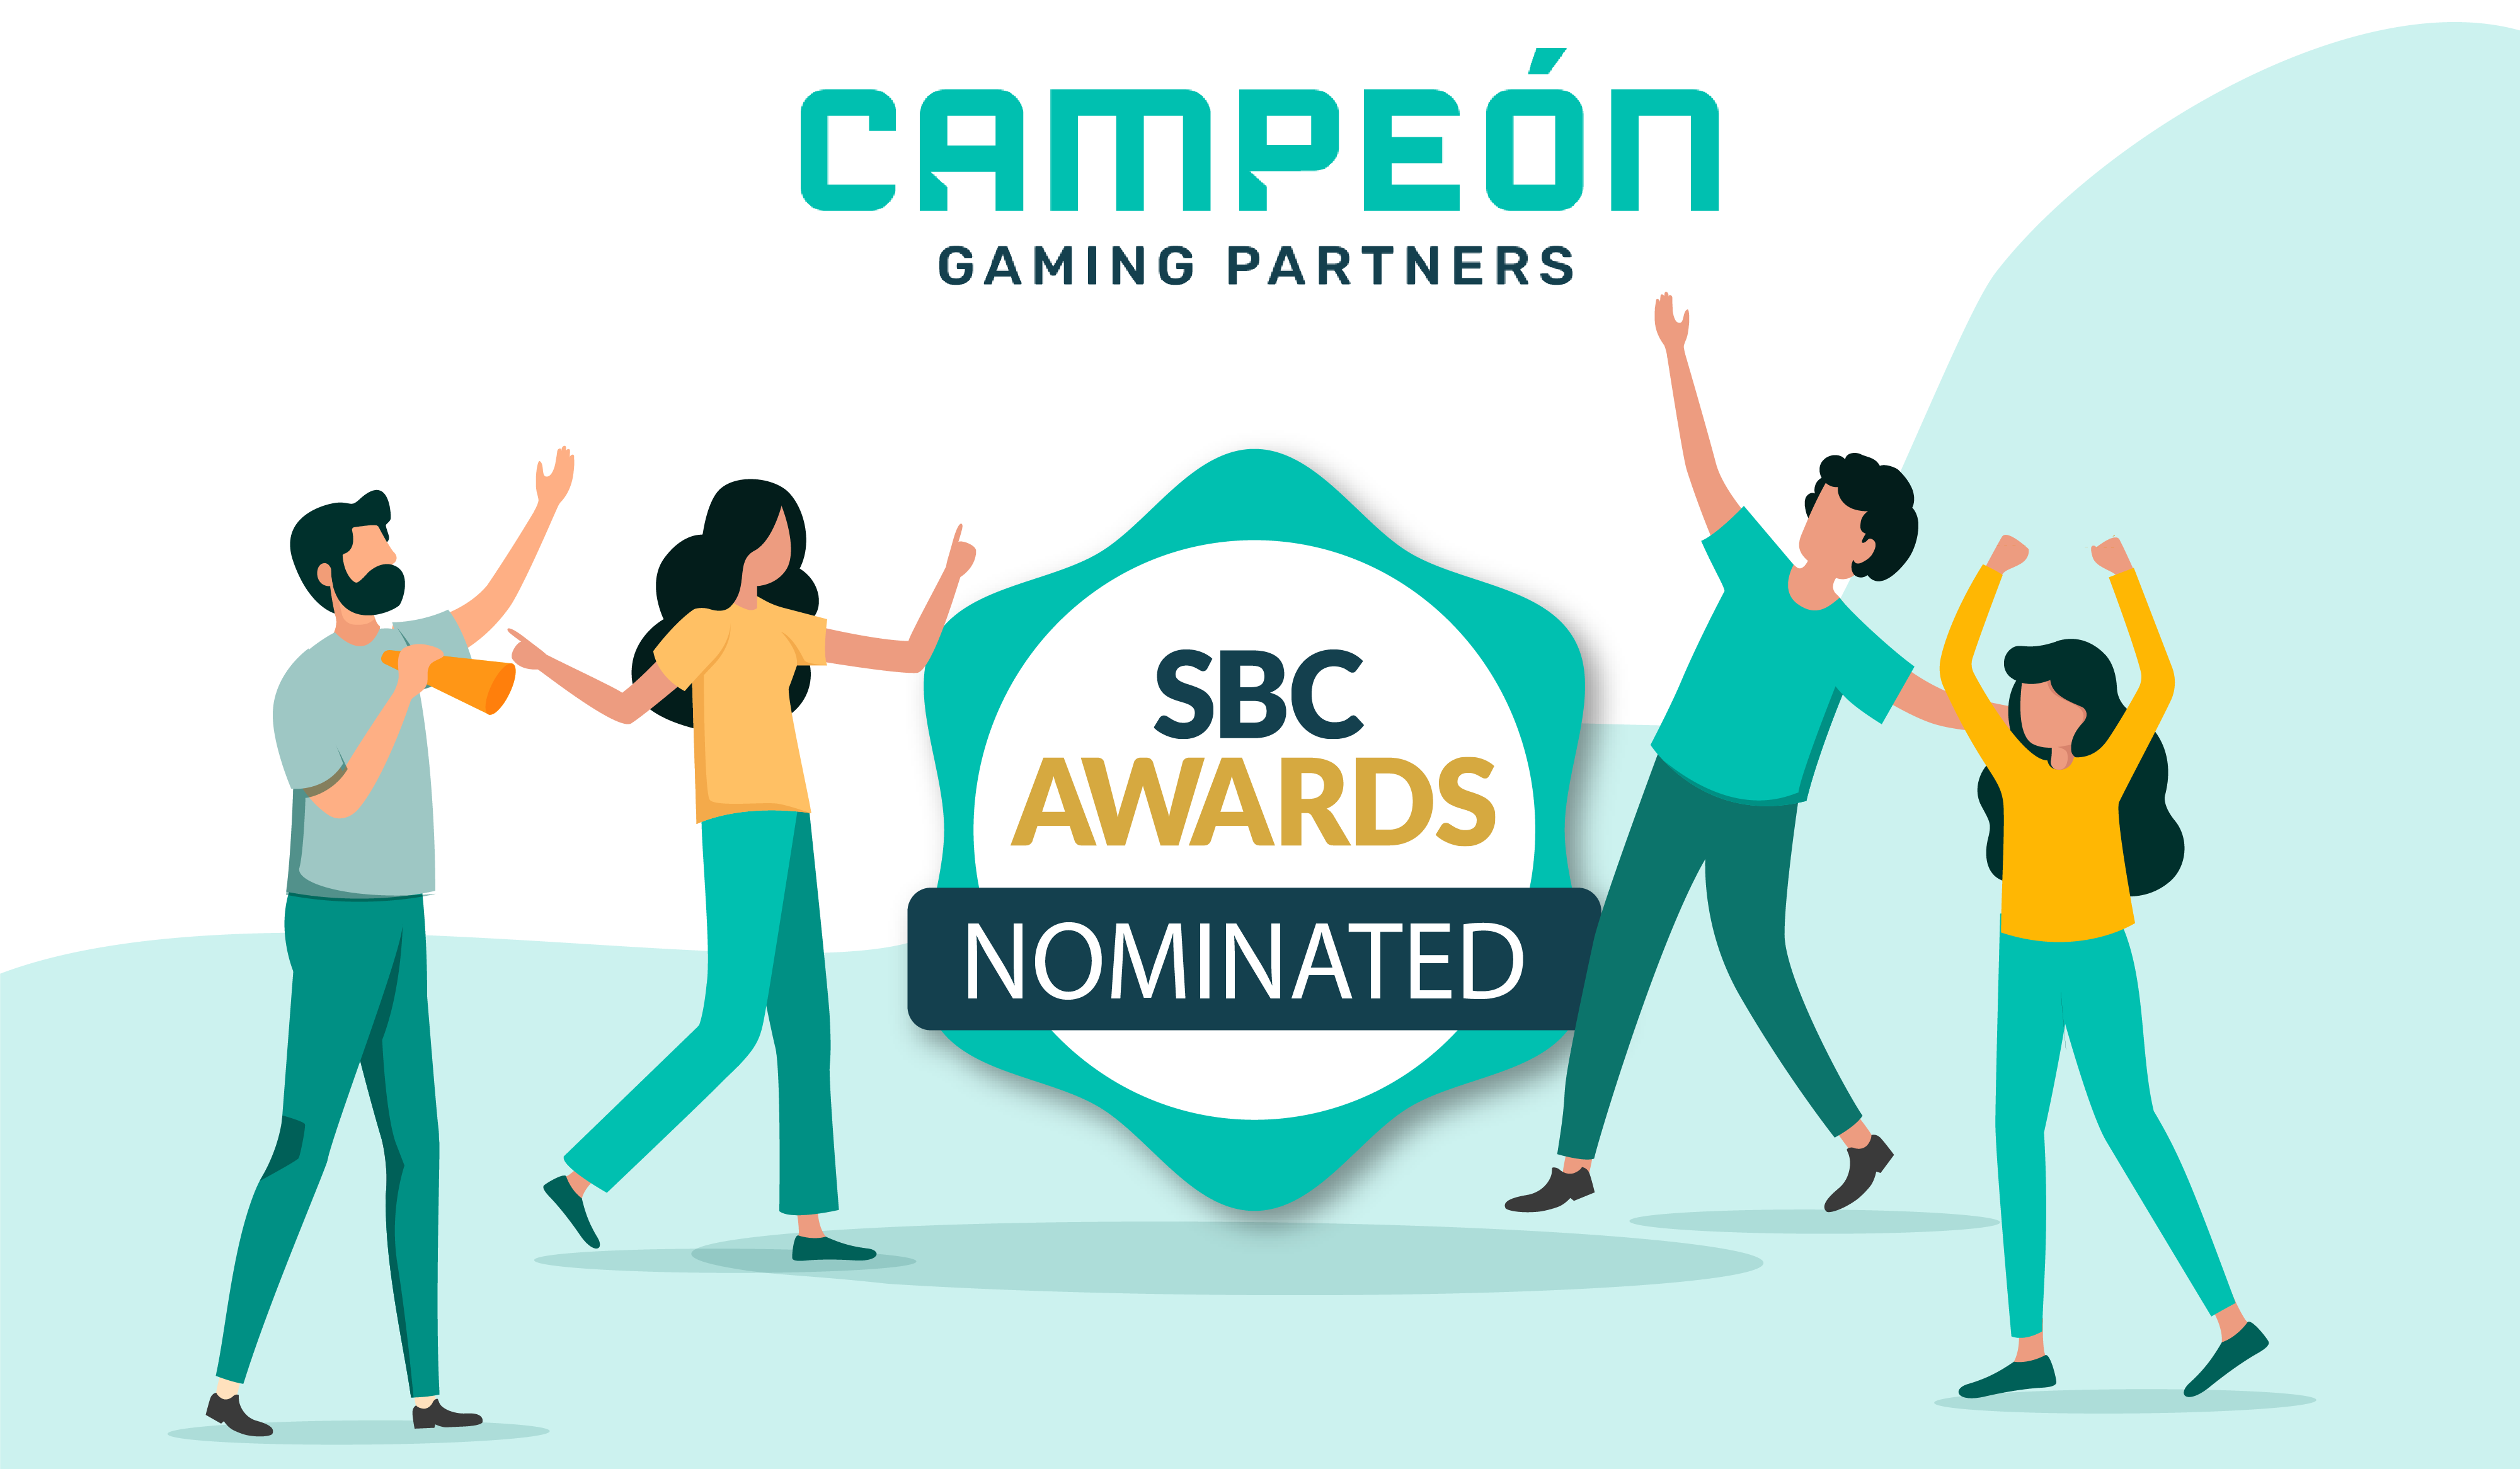 Campeón Gaming Partners nominated in 3 categories at the SBC Awards 2019